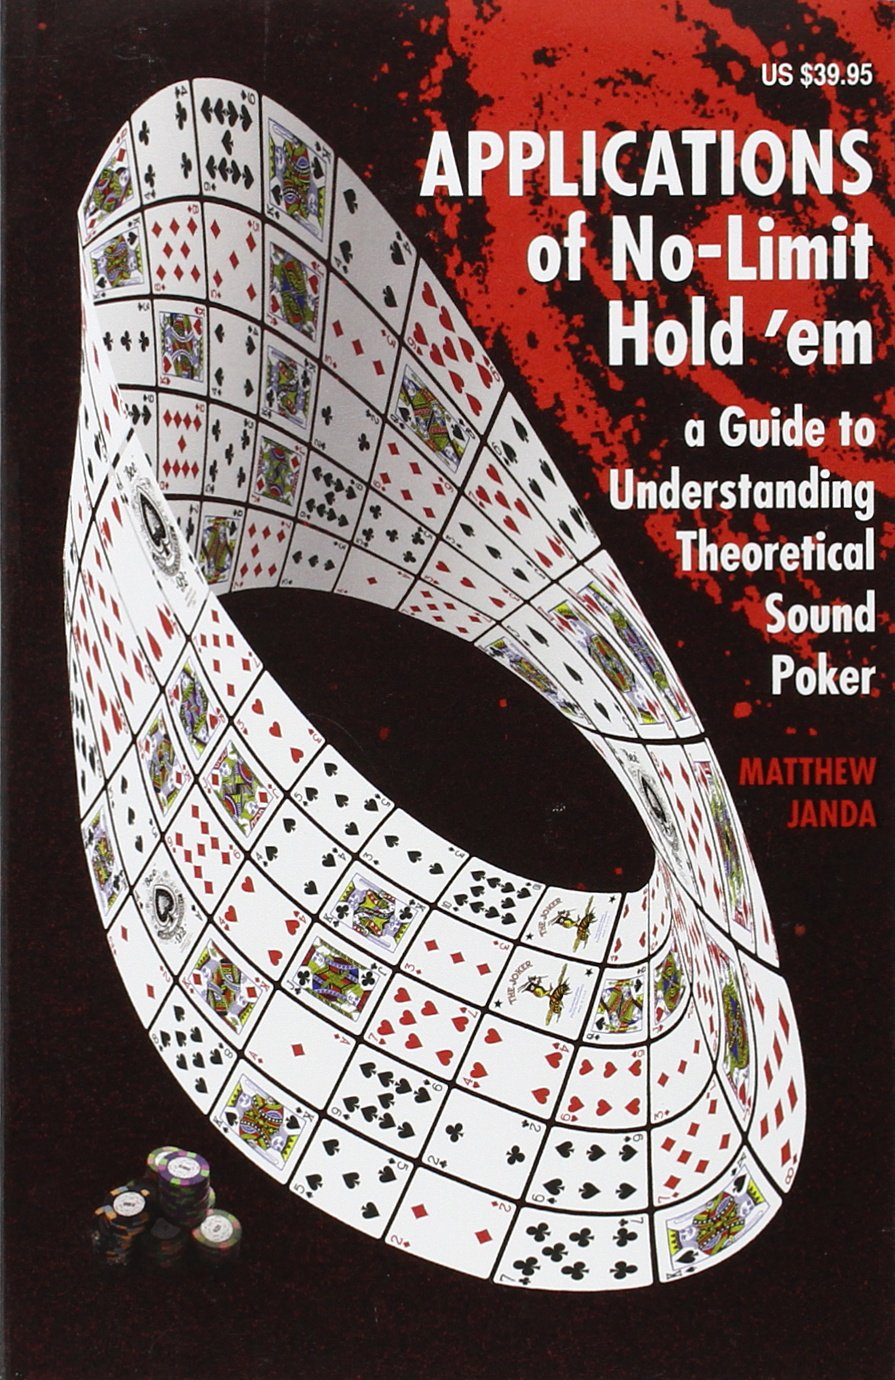 Applications of No-Limit Hold 'em: A Guide to Understanding